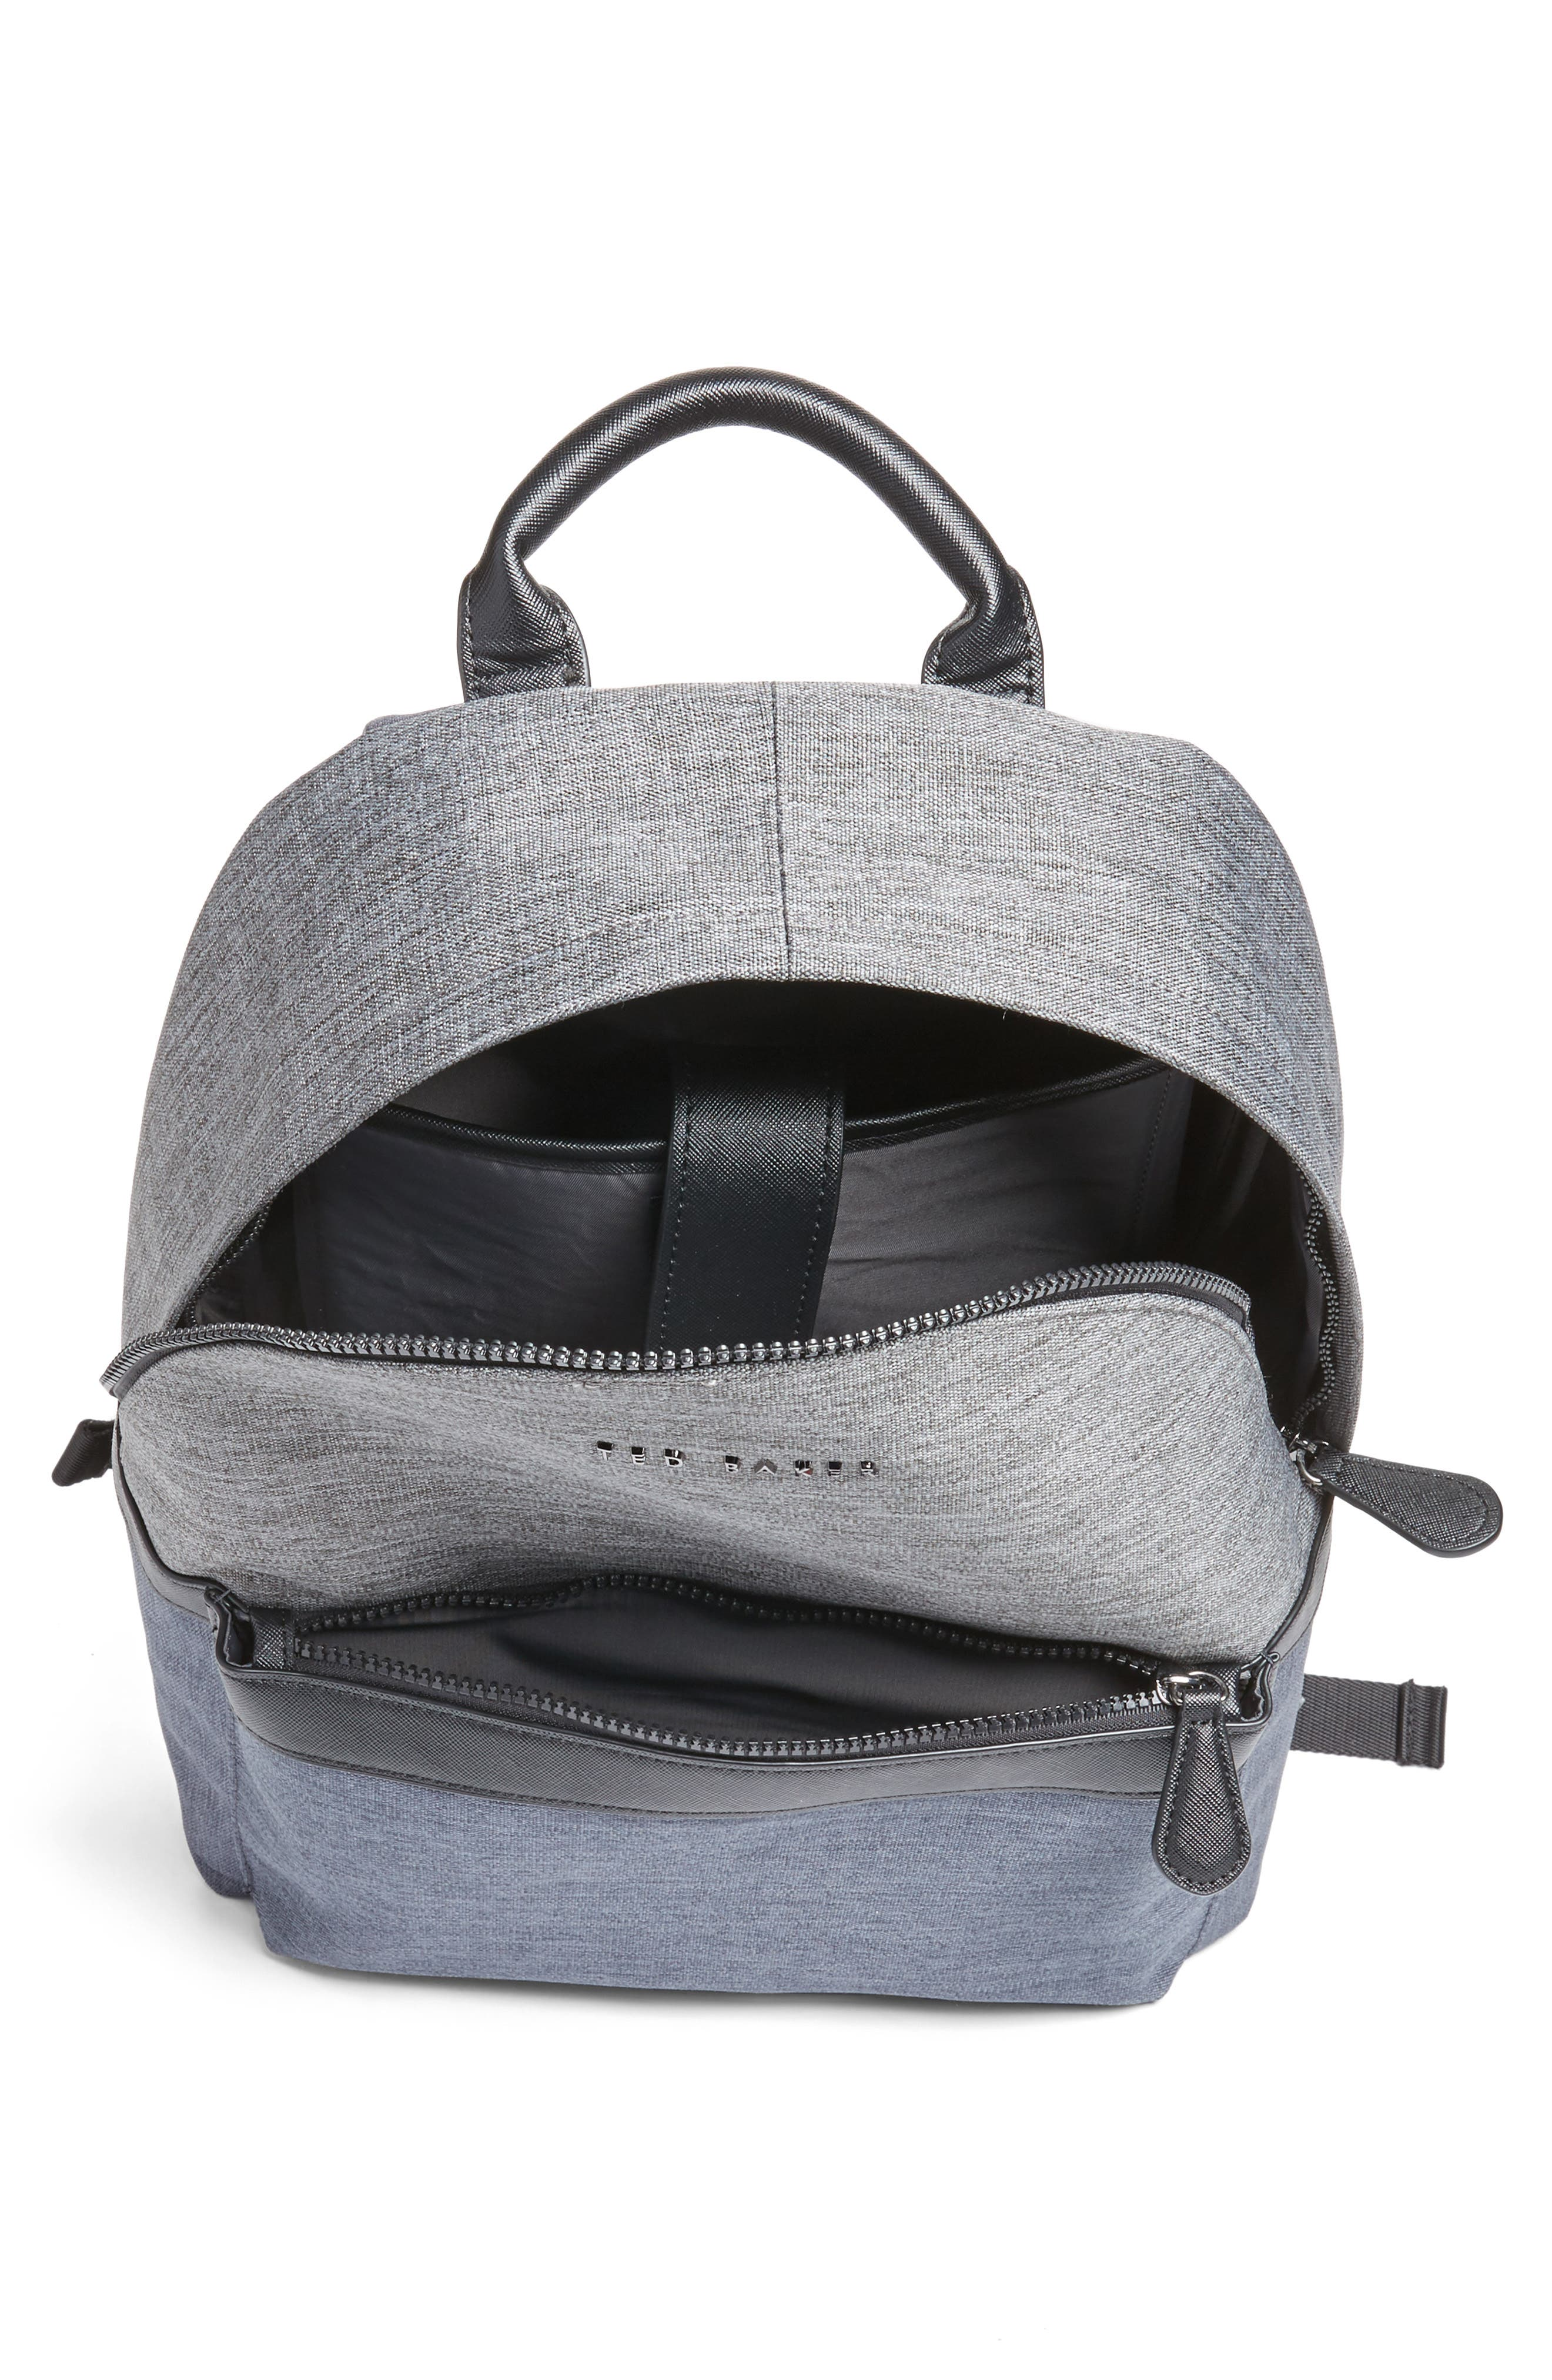 Stingra Backpack,                             Alternate thumbnail 4, color,                             010